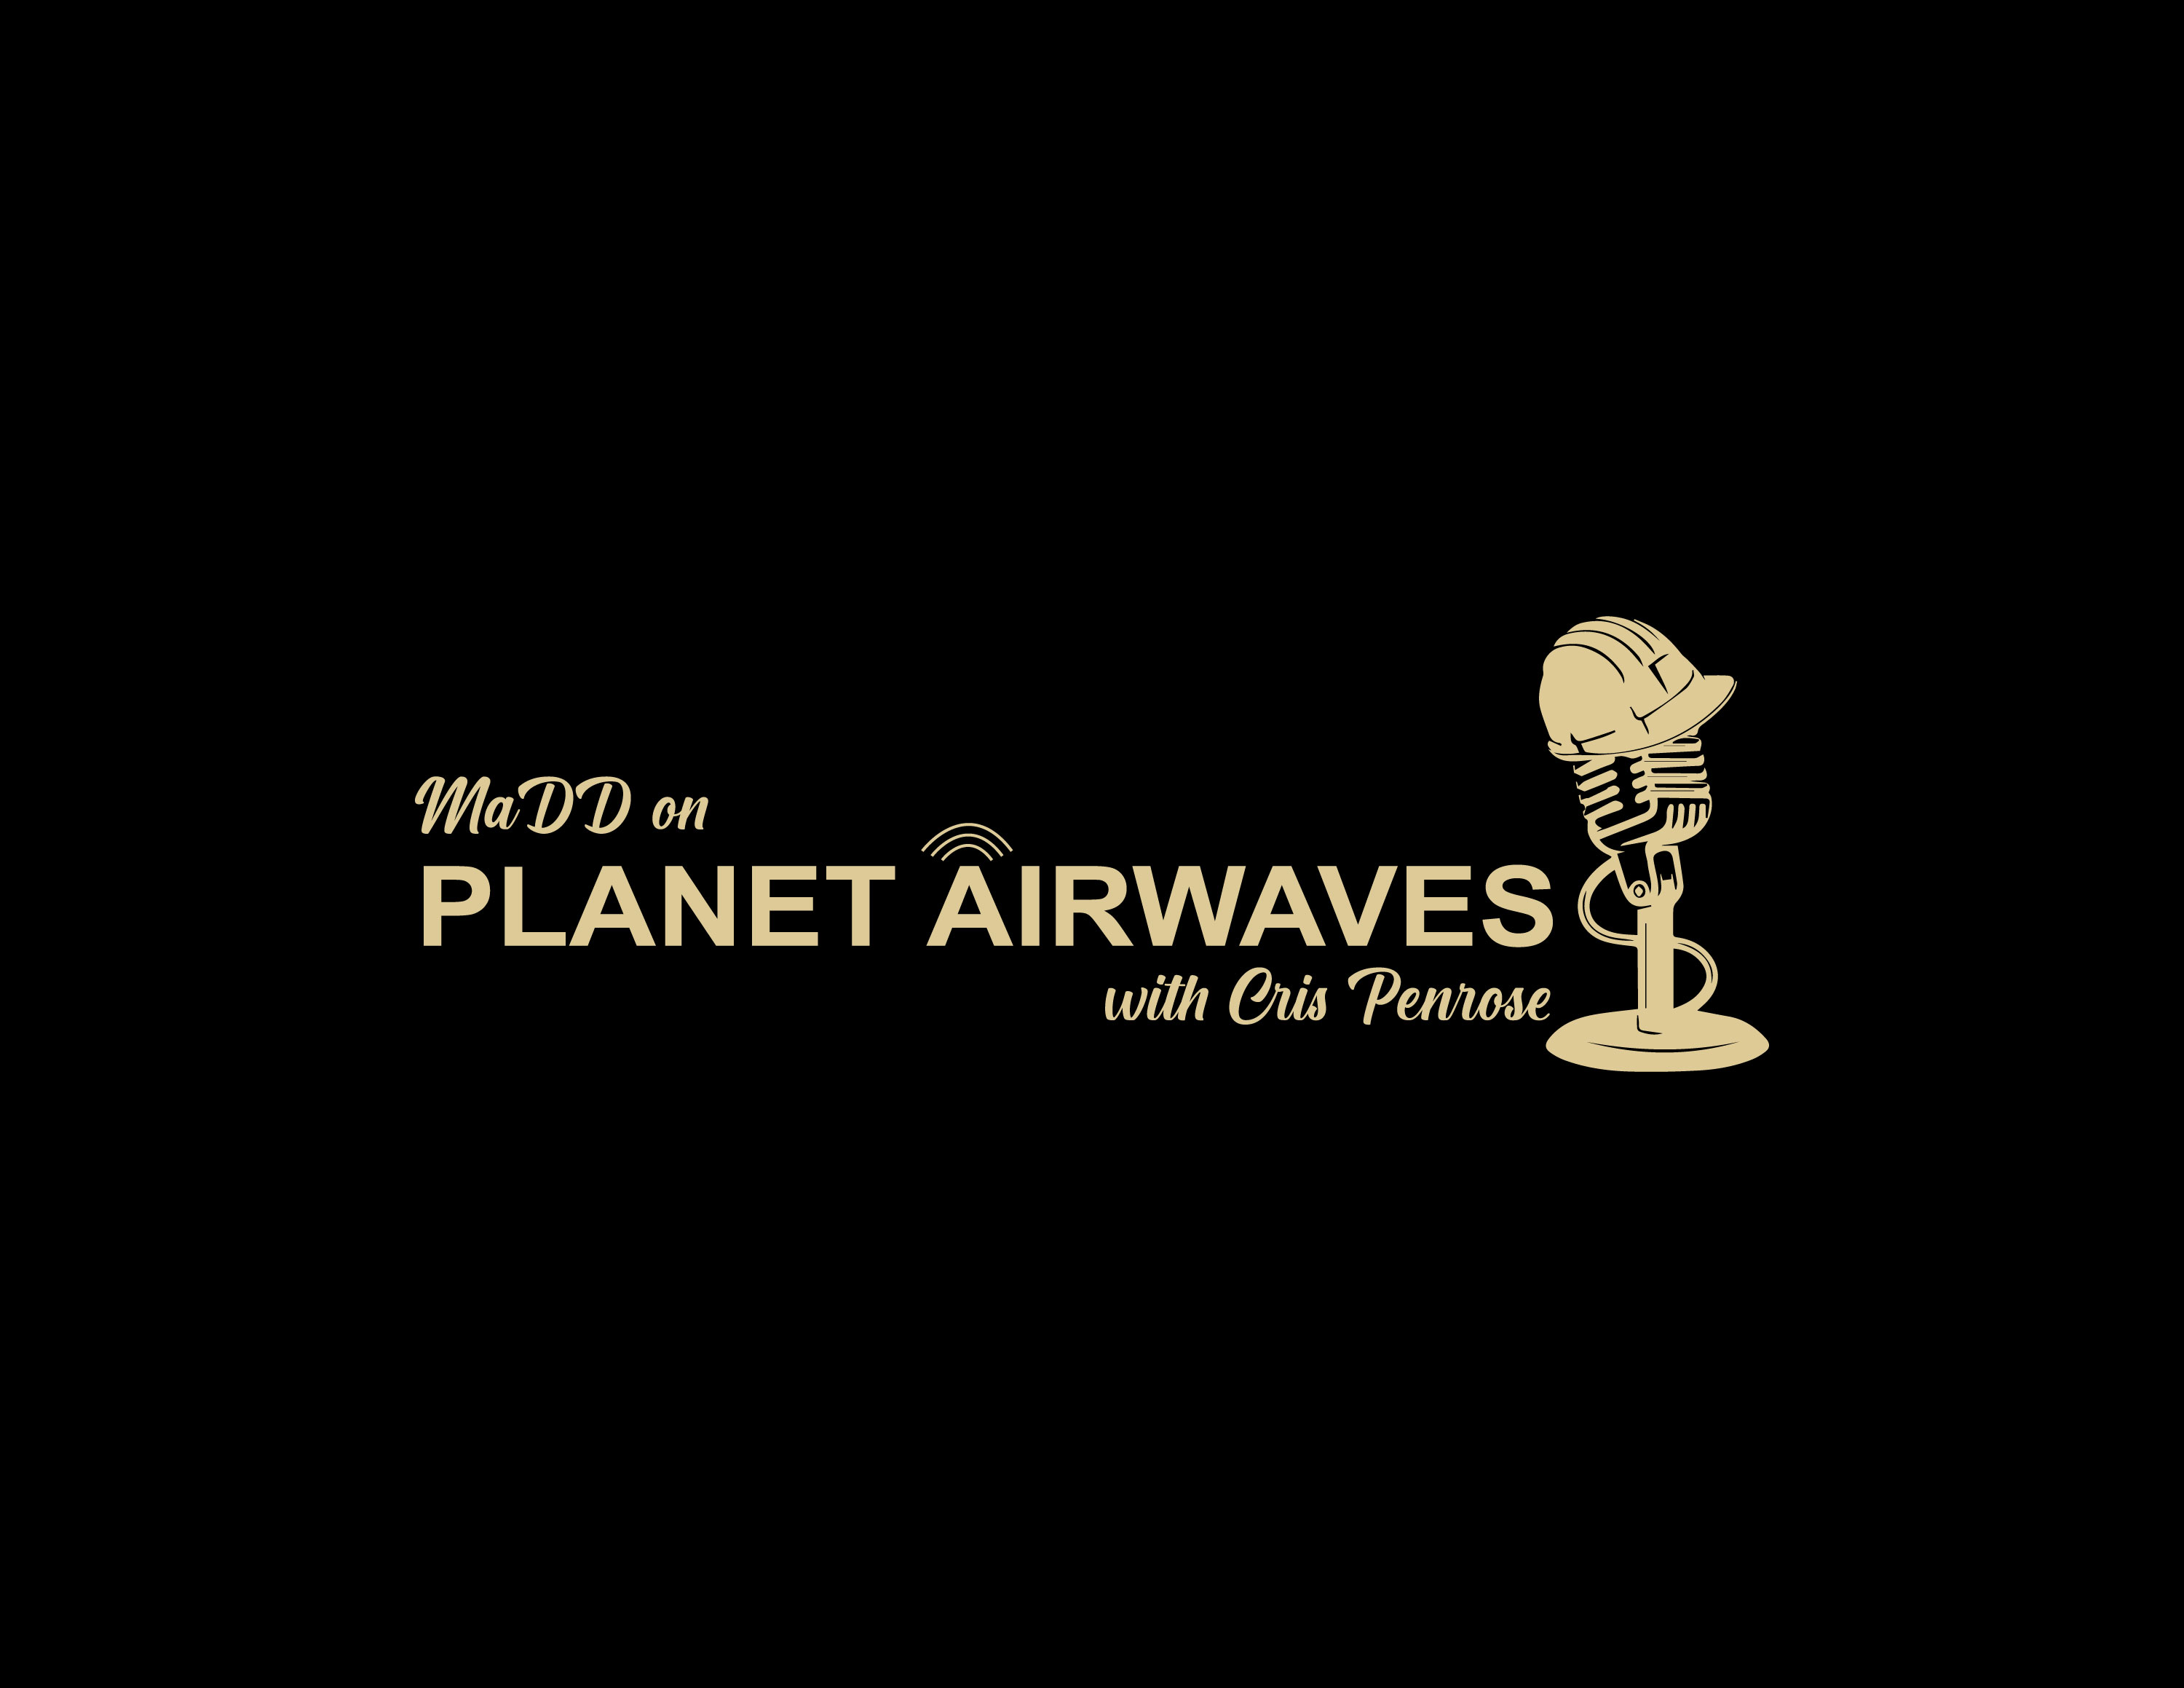 MaDD on Planet Airwaves